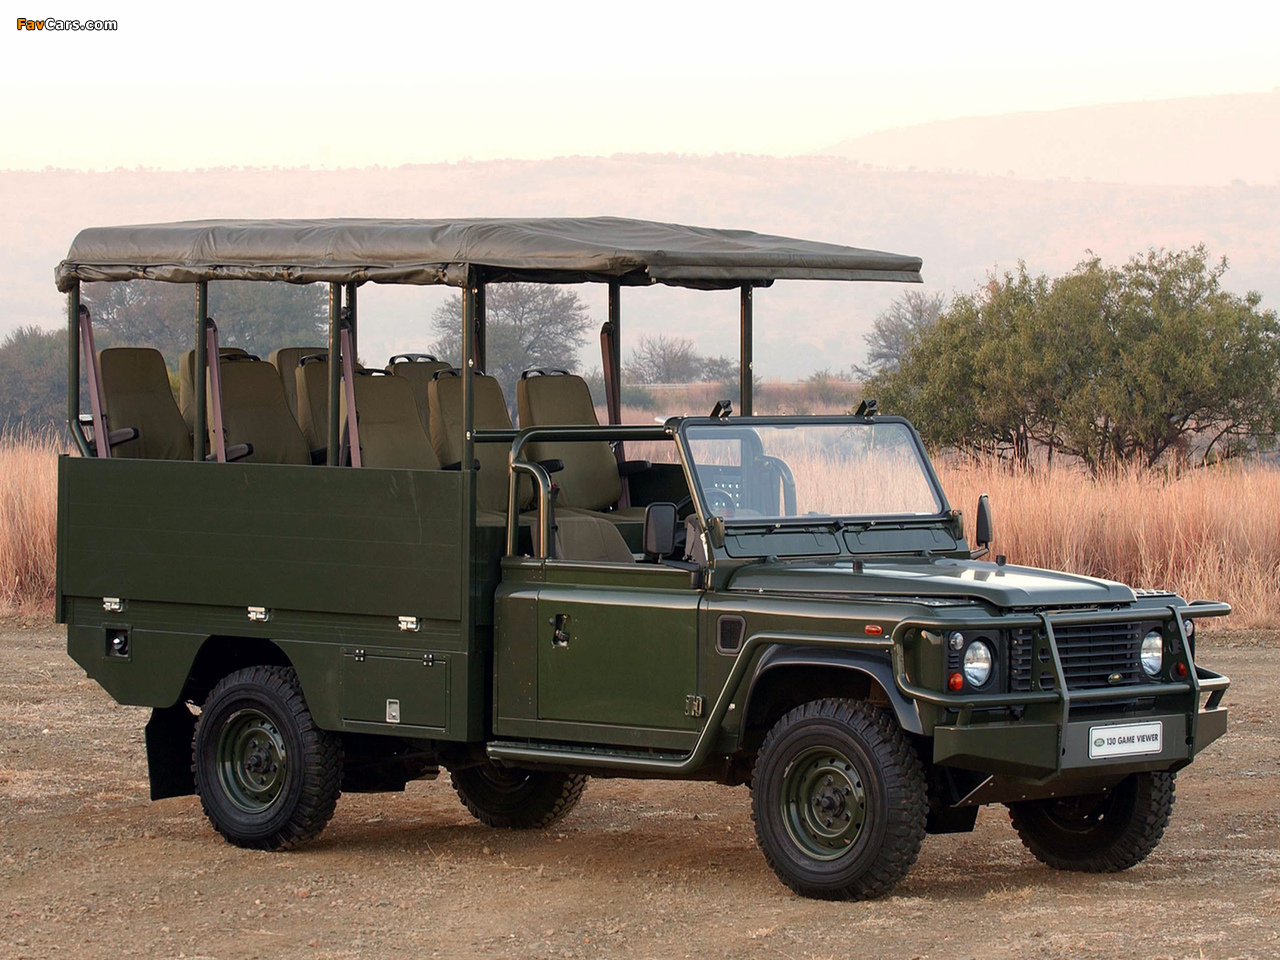 Land Rover Defender 130 Game Viewer wallpapers (1280 x 960)